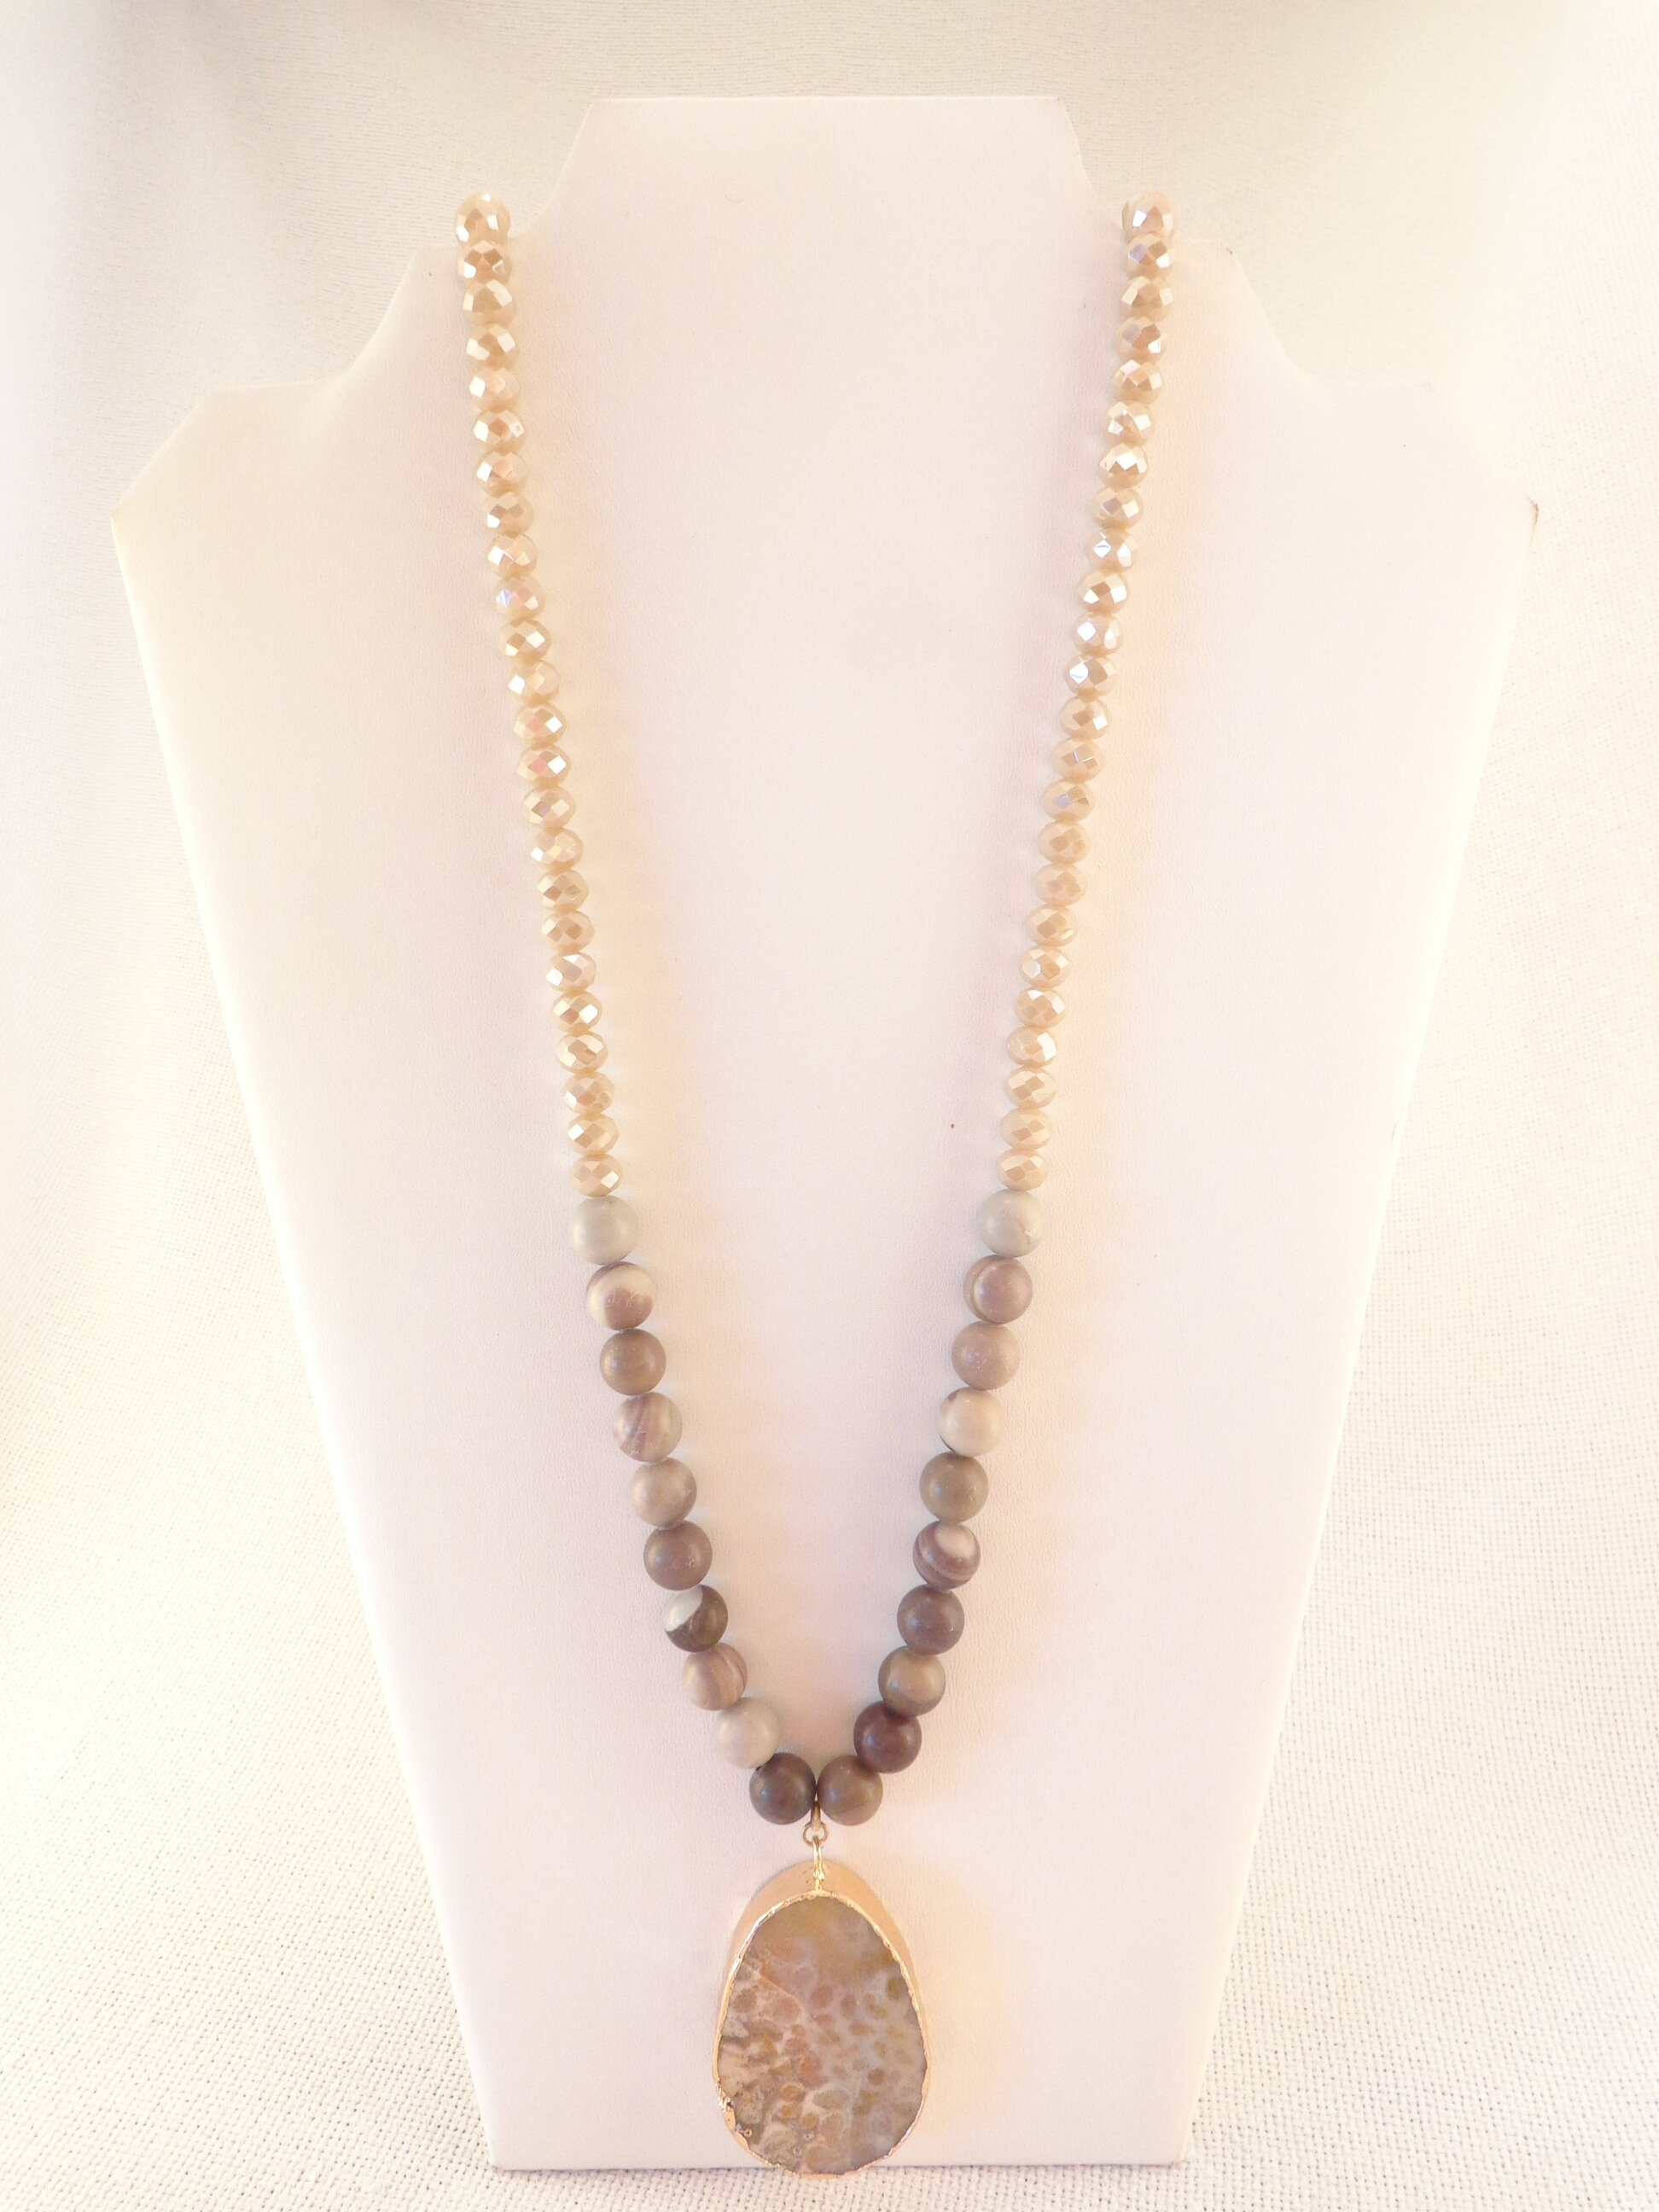 Necklace Beaded Pendant Necklace in brown